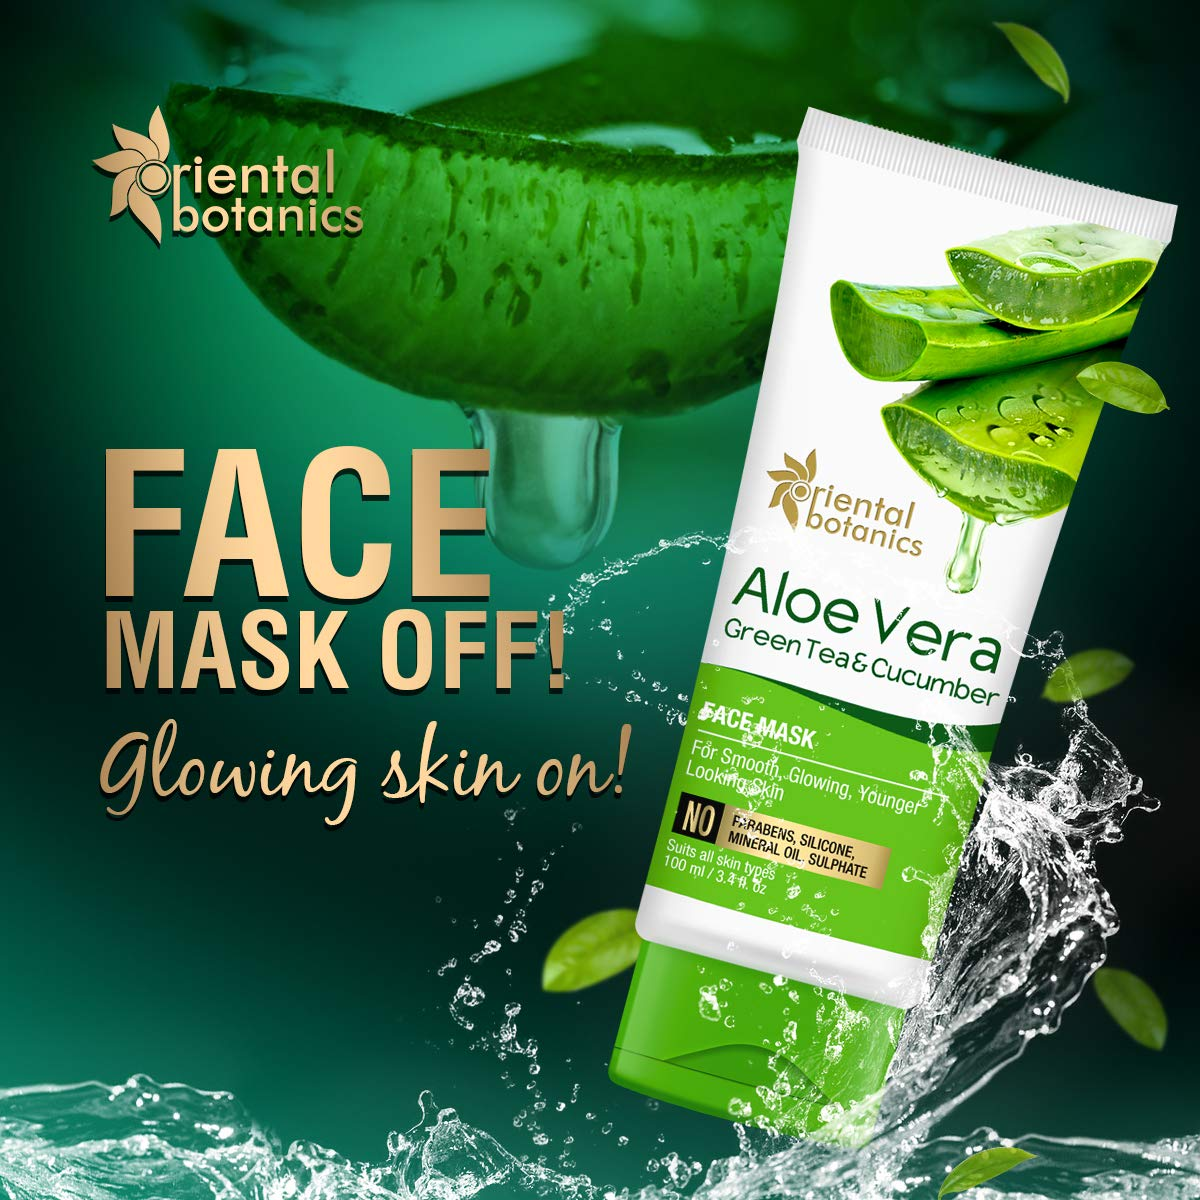 Oriental Botanics Aloe Vera, Green Tea & Cucumber Face Mask - best face pack for fairness